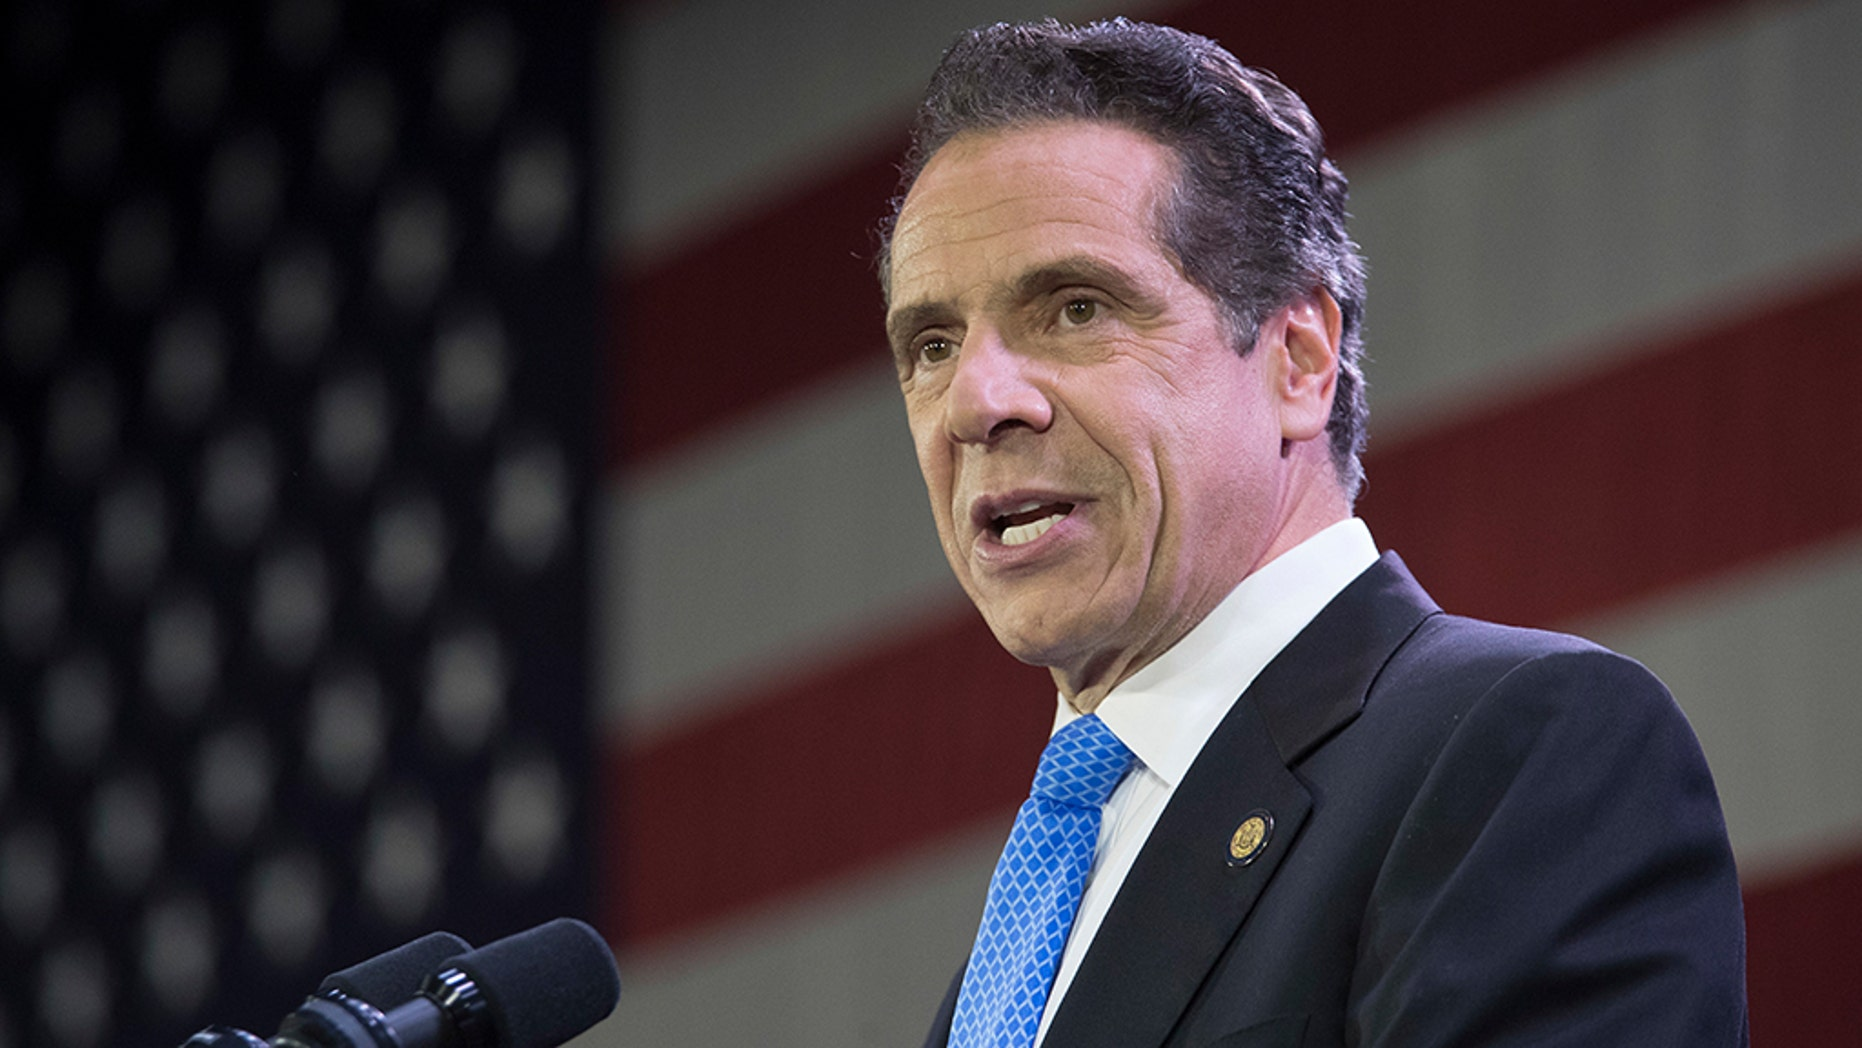 """gov. Andrew Cuomo speaks to supporters during a New York State Democratic Committee's Election Party Tuesday, November 6, 201<div class=""""e3lan e3lan-in-post1""""><script async src=""""//pagead2.googlesyndication.com/pagead/js/adsbygoogle.js""""></script> <!-- Text_Image --> <ins class=""""adsbygoogle""""      style=""""display:block""""      data-ad-client=""""ca-pub-6192903739091894""""      data-ad-slot=""""3136787391""""      data-ad-format=""""auto""""      data-full-width-responsive=""""true""""></ins> <script> (adsbygoogle = window.adsbygoogle 